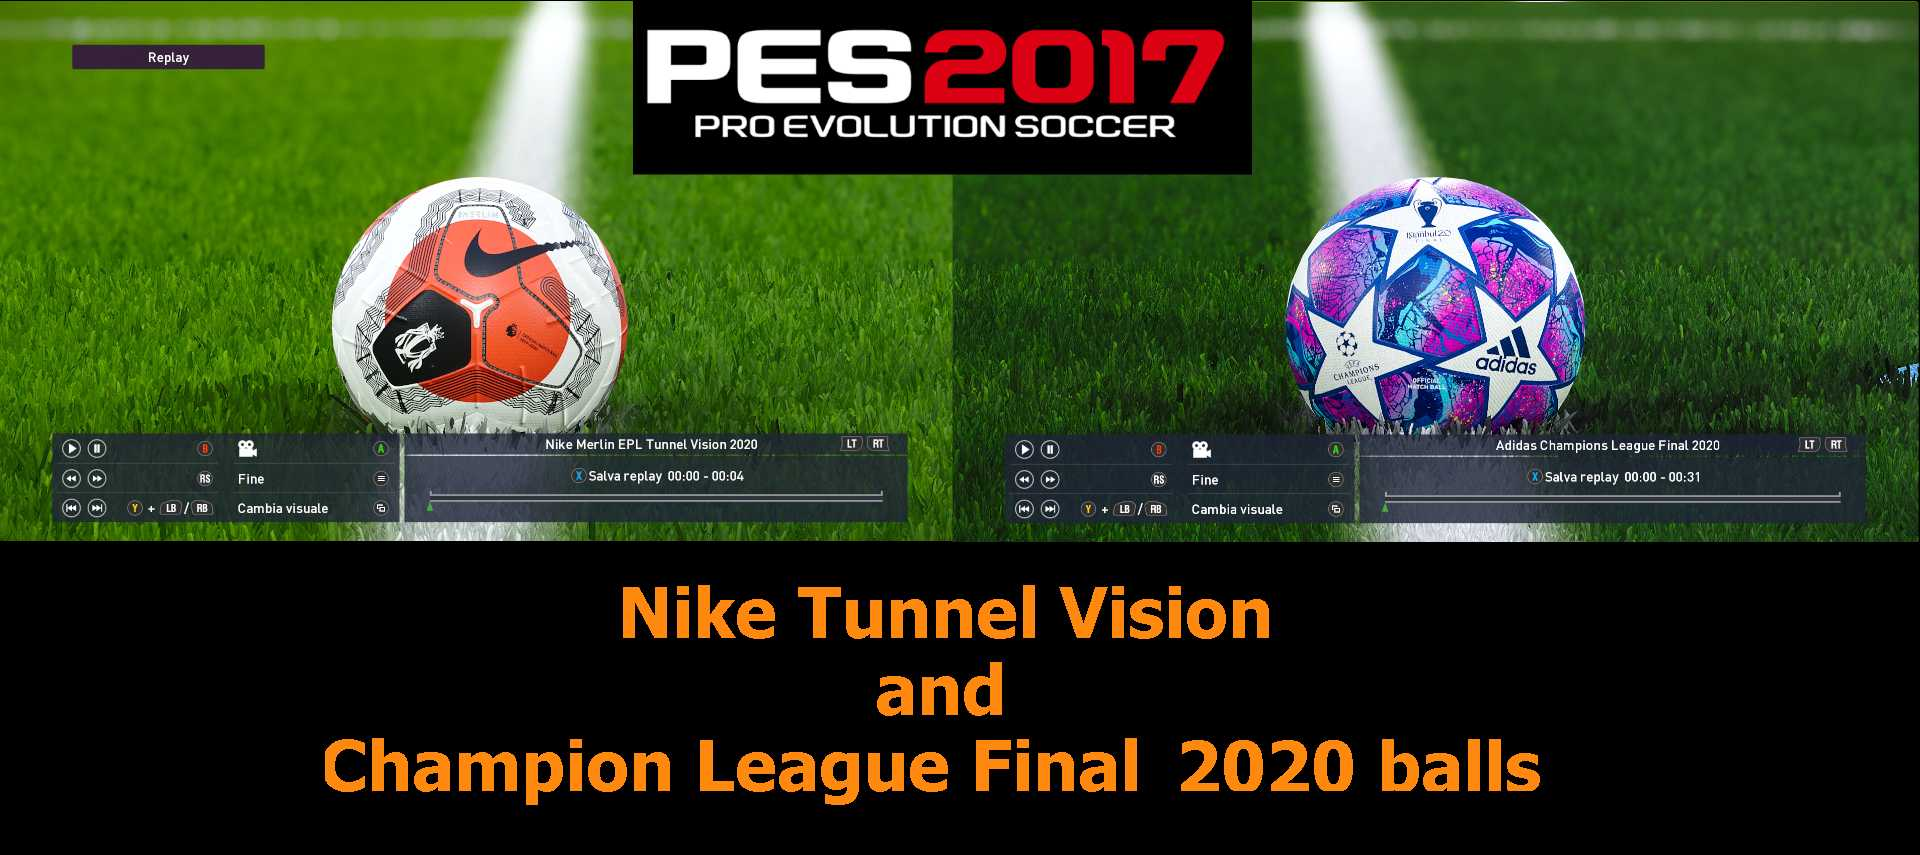 Merlin Tunnel Vision and CL Final 2020 Balls For PES 2017